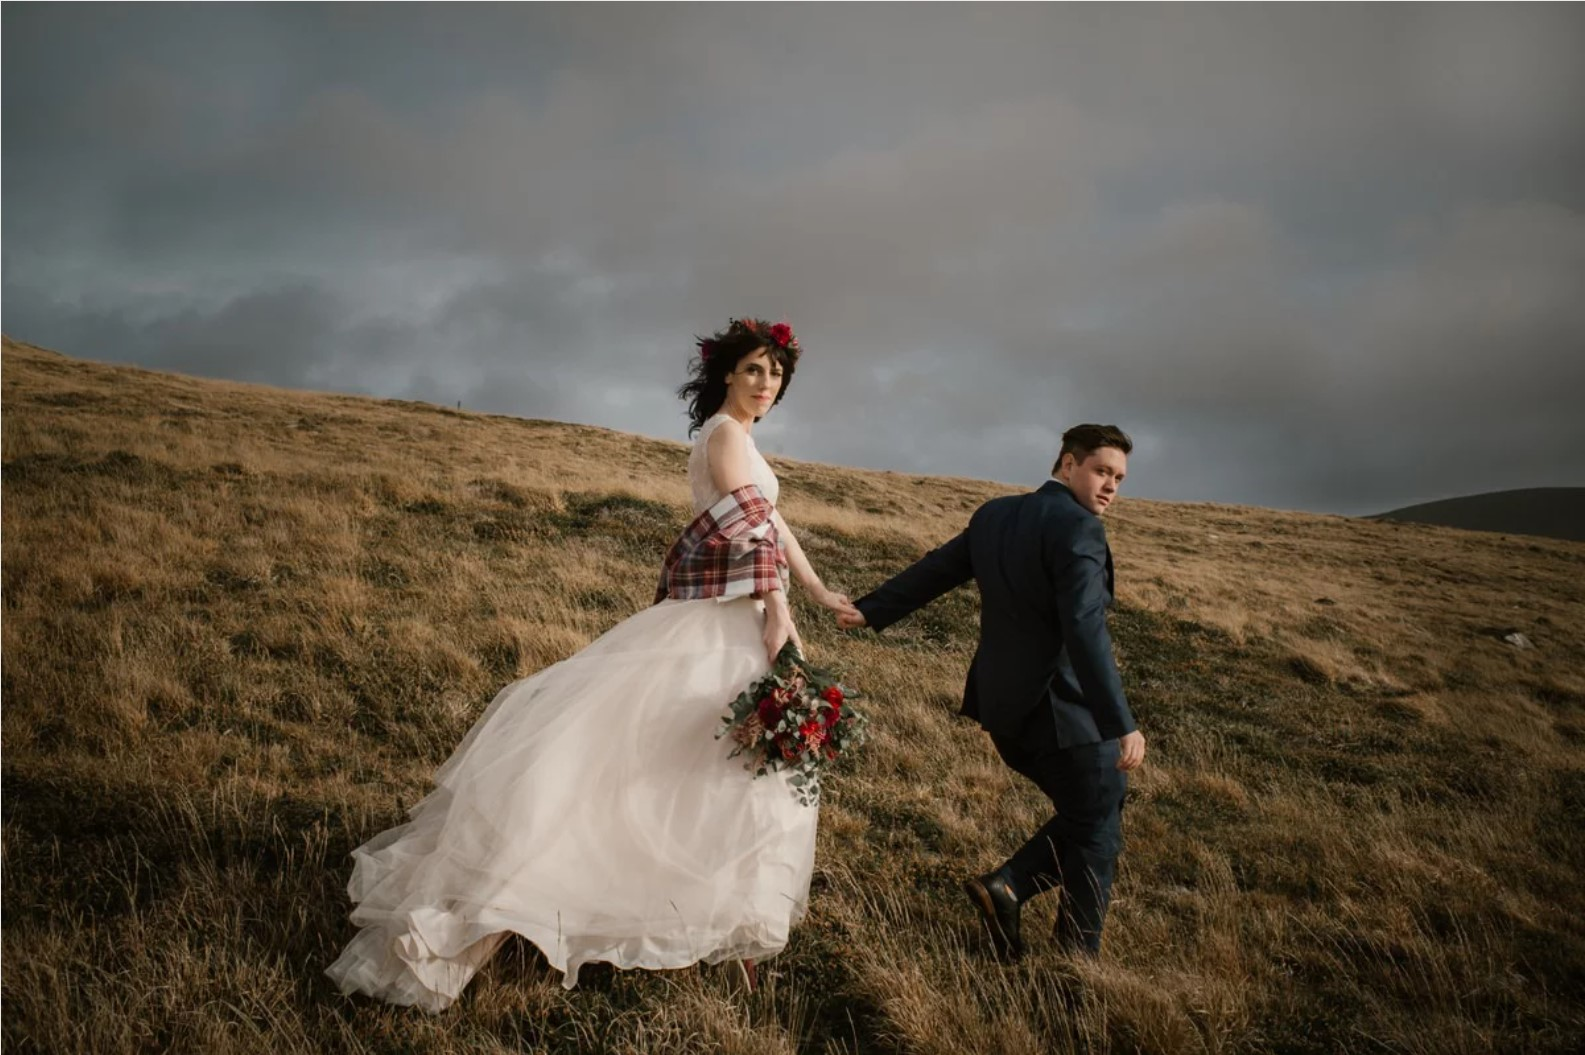 Elopement photo in open field in Ireland by White Cat Studio